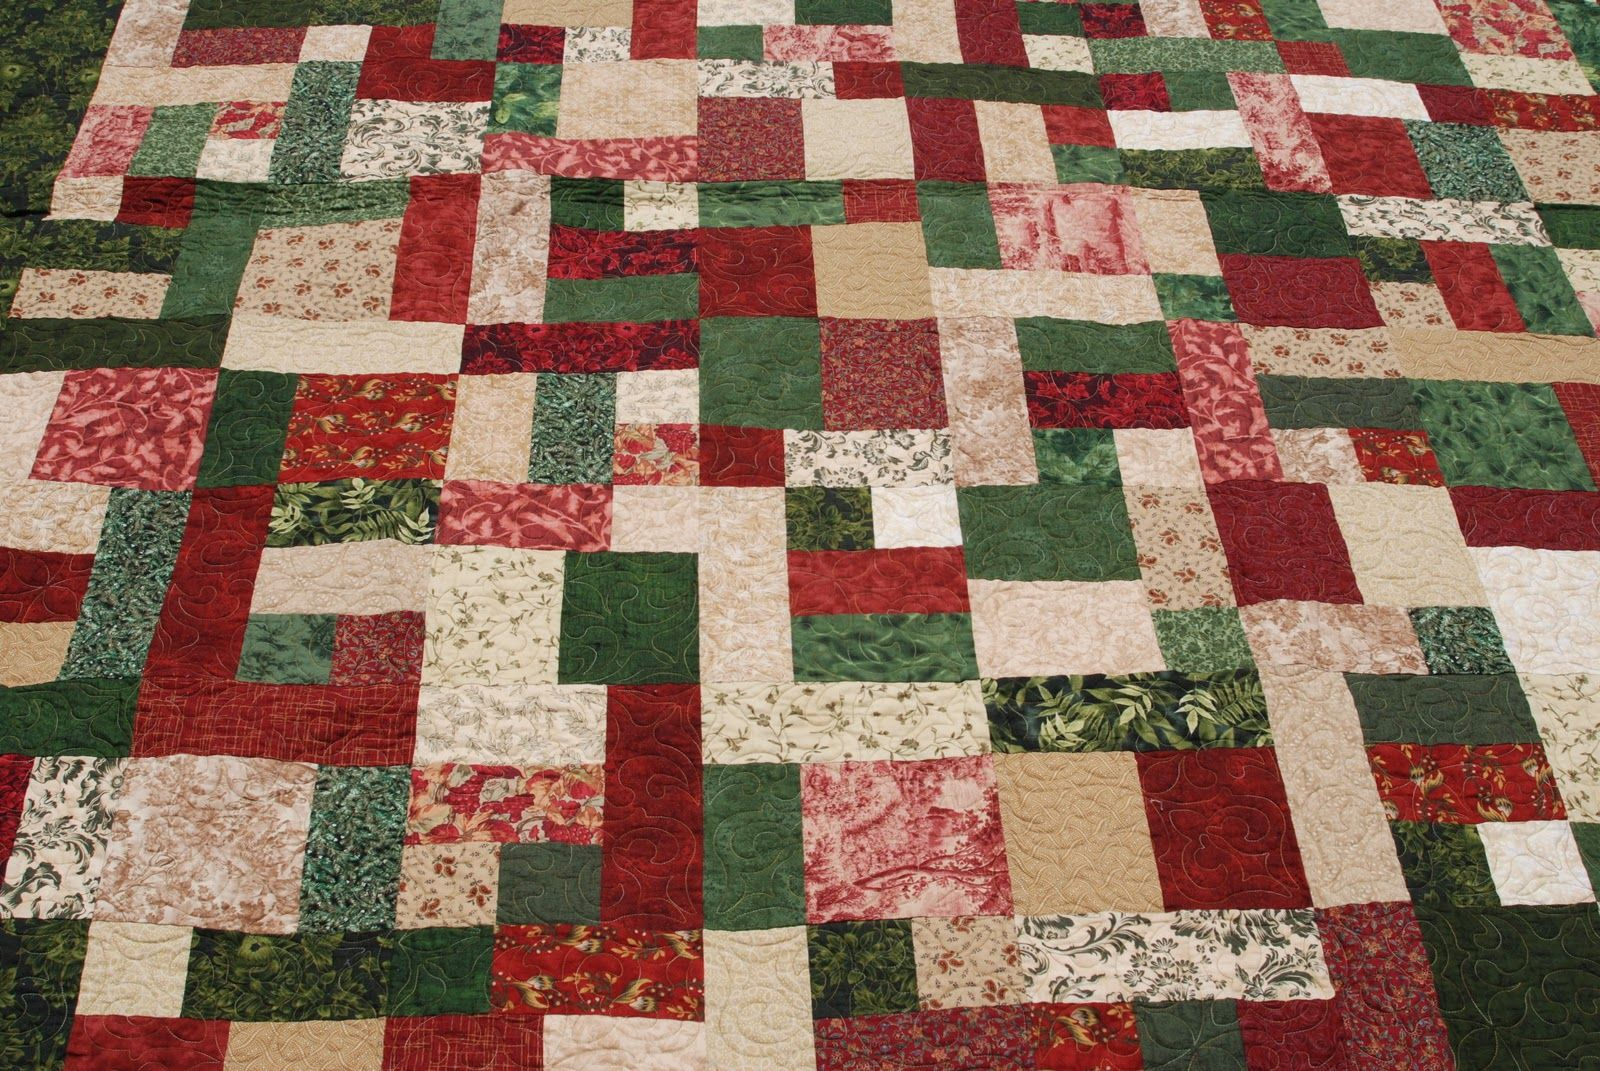 Yellow Brick Road Quilt Pattern Free